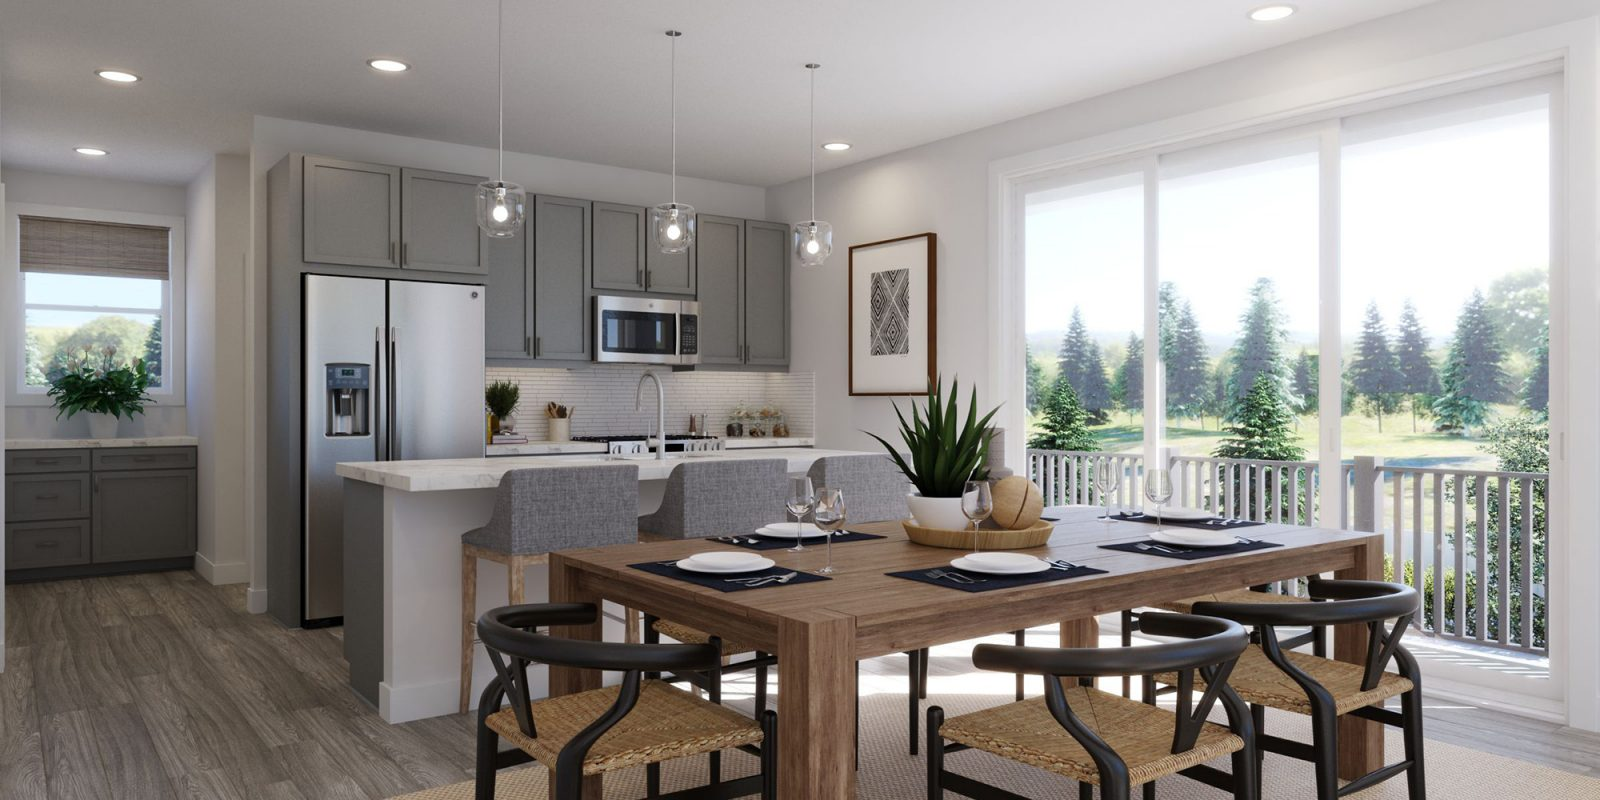 Baseline DoMore Rows: Haven - Dining Nook